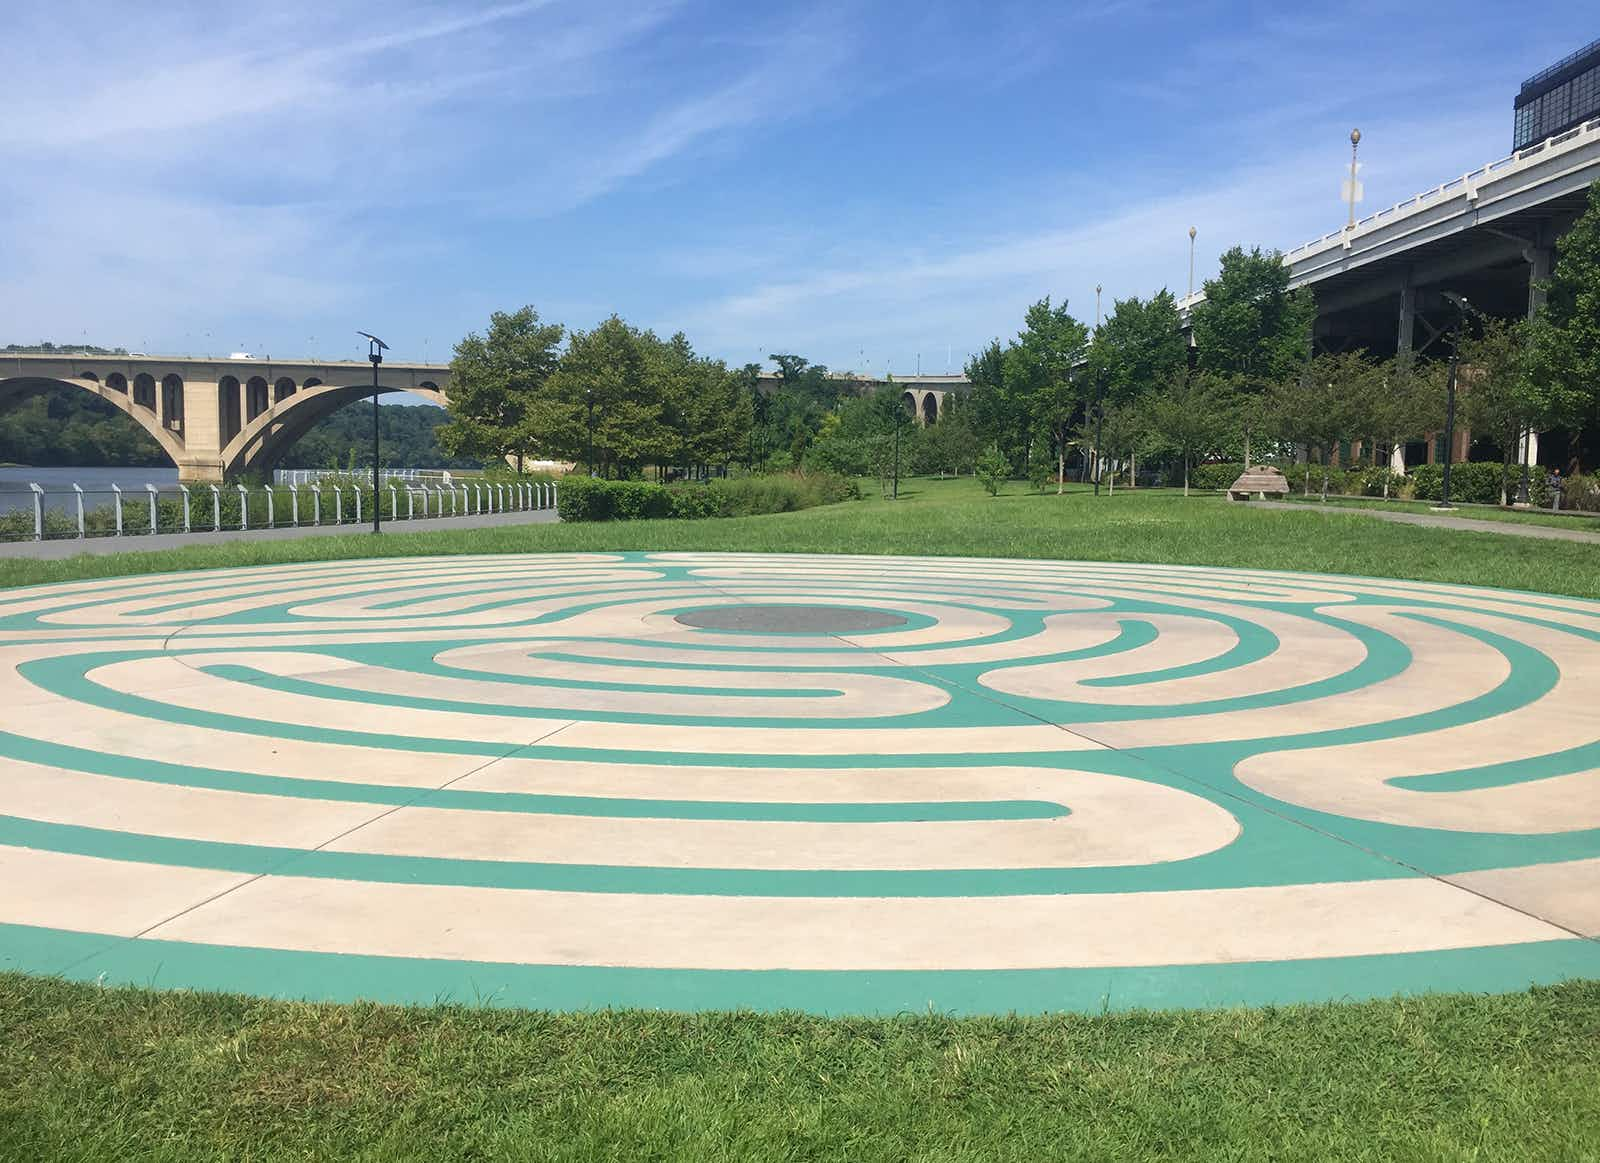 Cream labyrinth design surrounded by green under sunny blue skies in Georgetown in Washington DC © Barbara Noe Kennedy / Lonely Planet